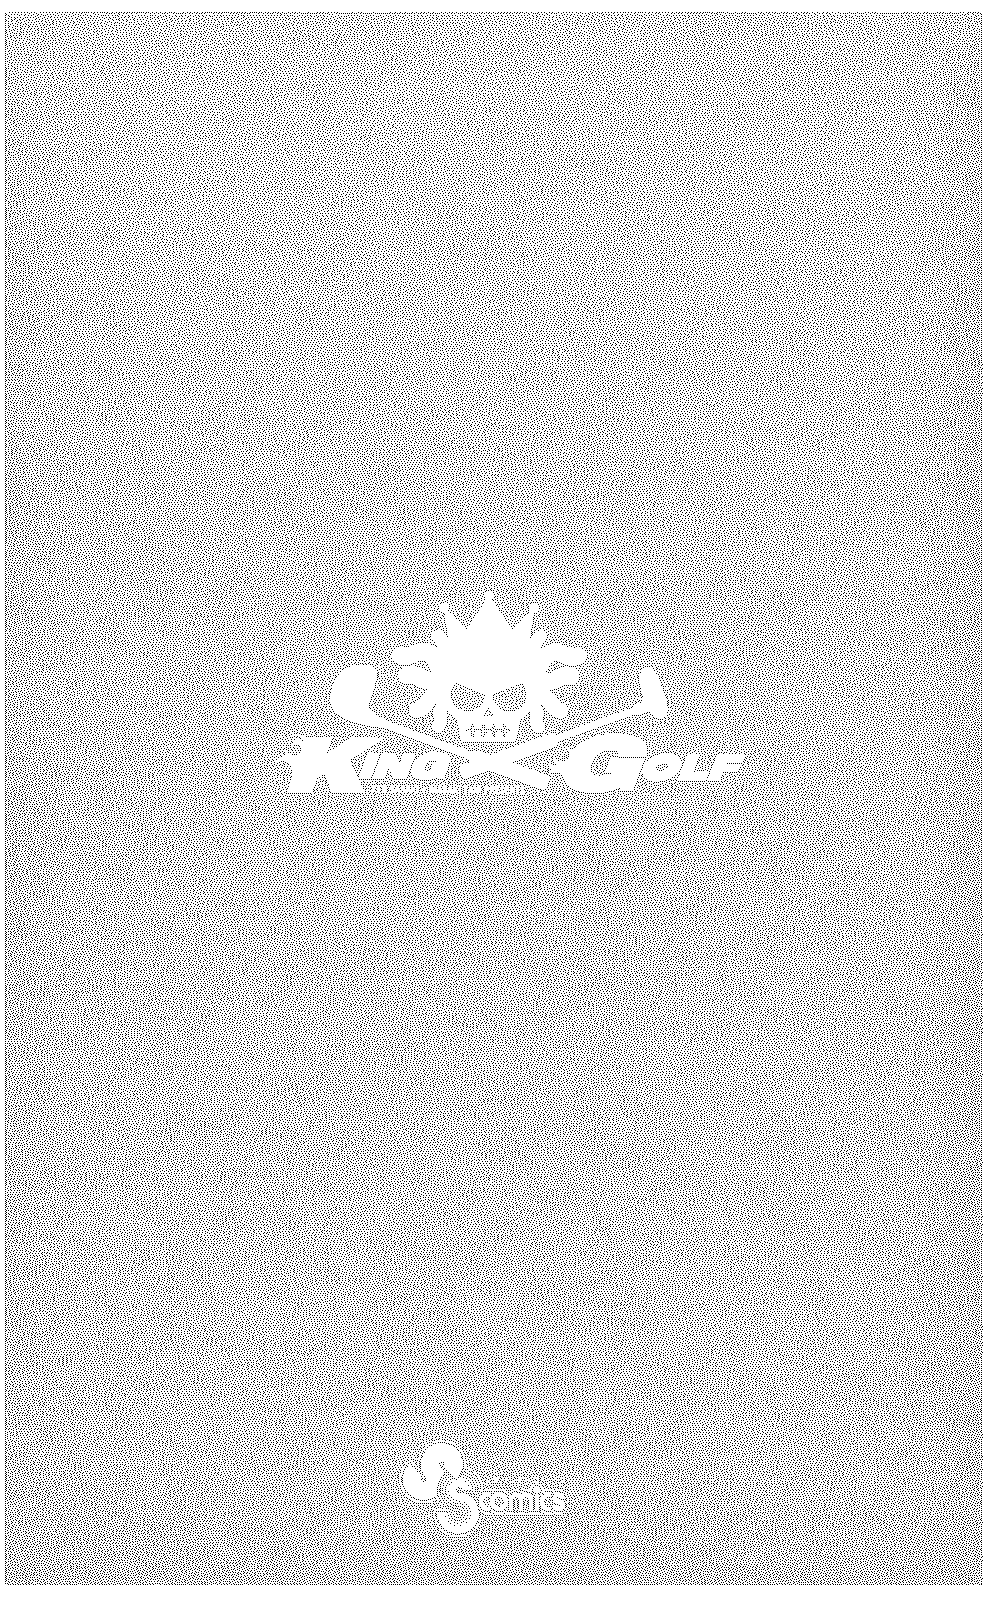 Komik king golf 001 - chapter 1 2 Indonesia king golf 001 - chapter 1 Terbaru 61|Baca Manga Komik Indonesia|